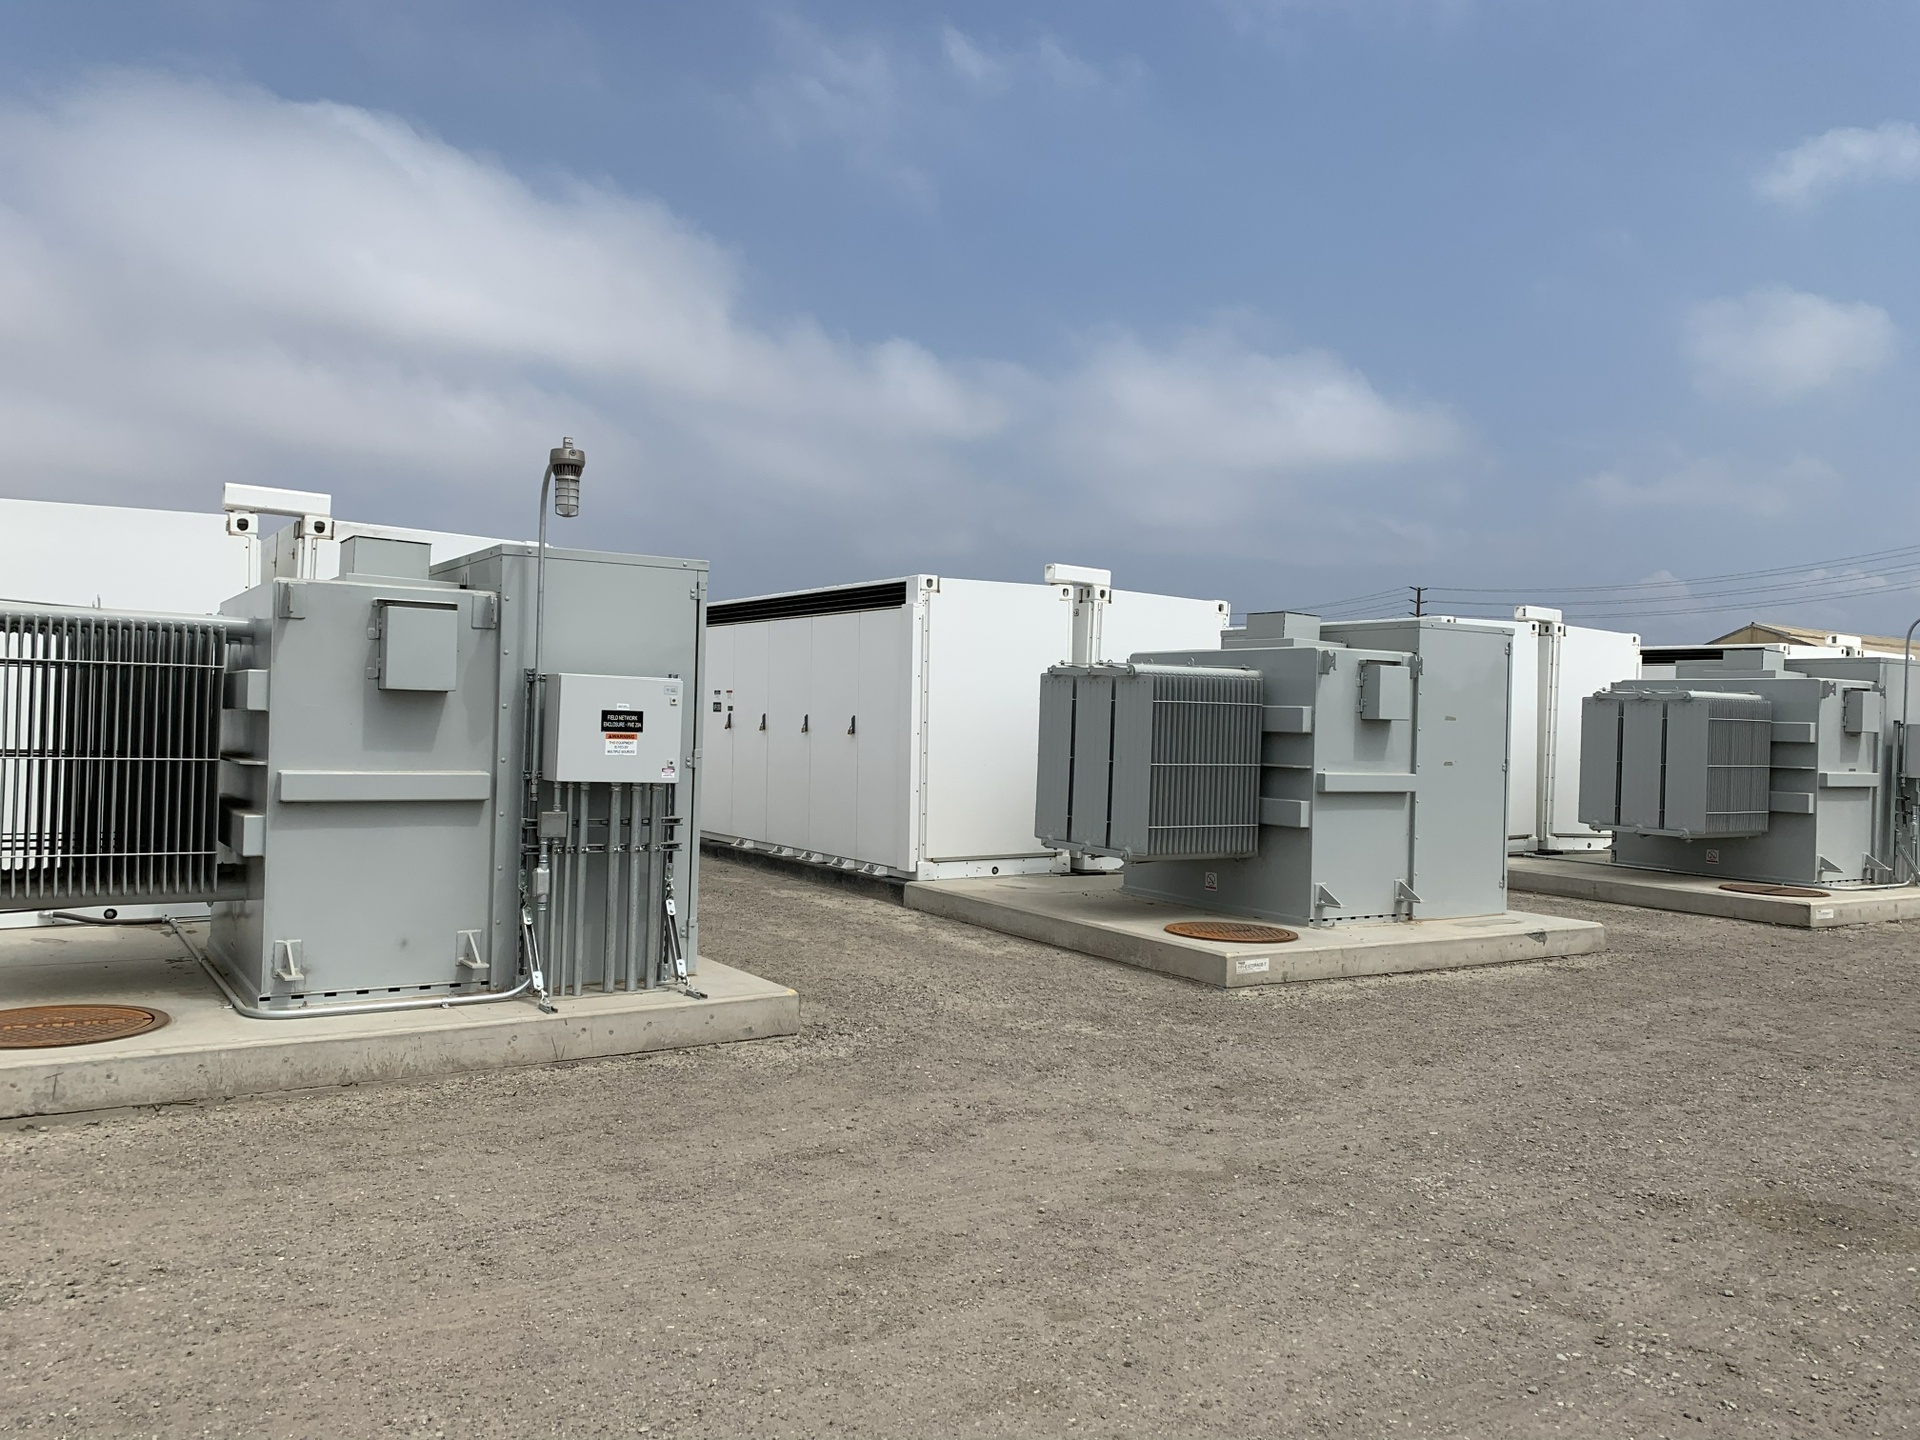 The 100-megawatt, 400-megawatt hour battery system is capable of powering all of Ventura County for up to 30 minutes.